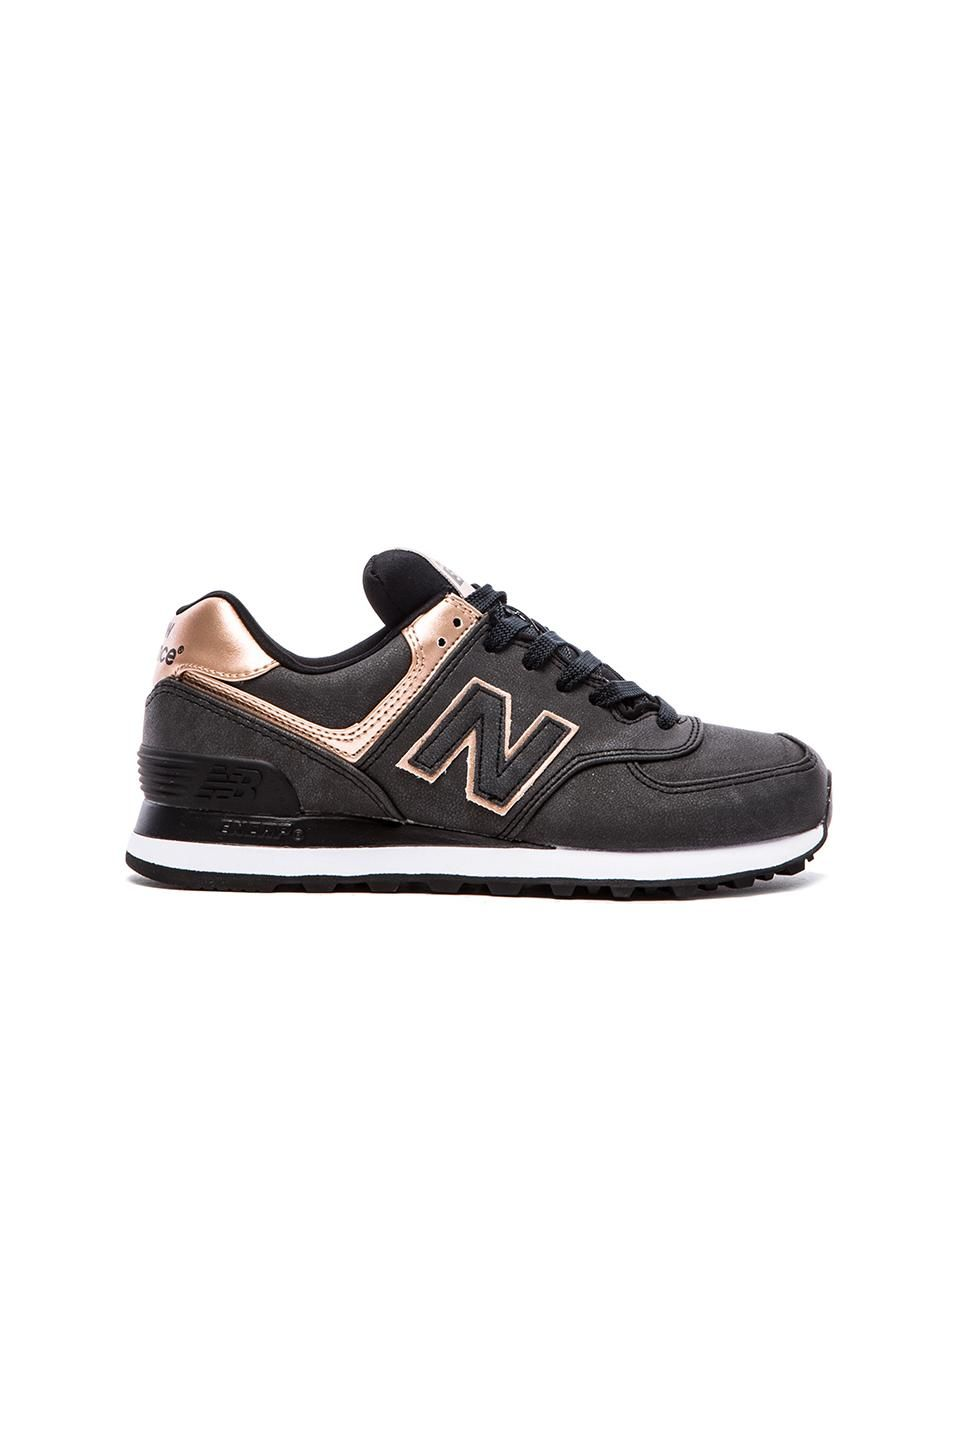 369690344824 new balance rose gold shoes - Just bought these for long walks and they are  super comfortable and cute.